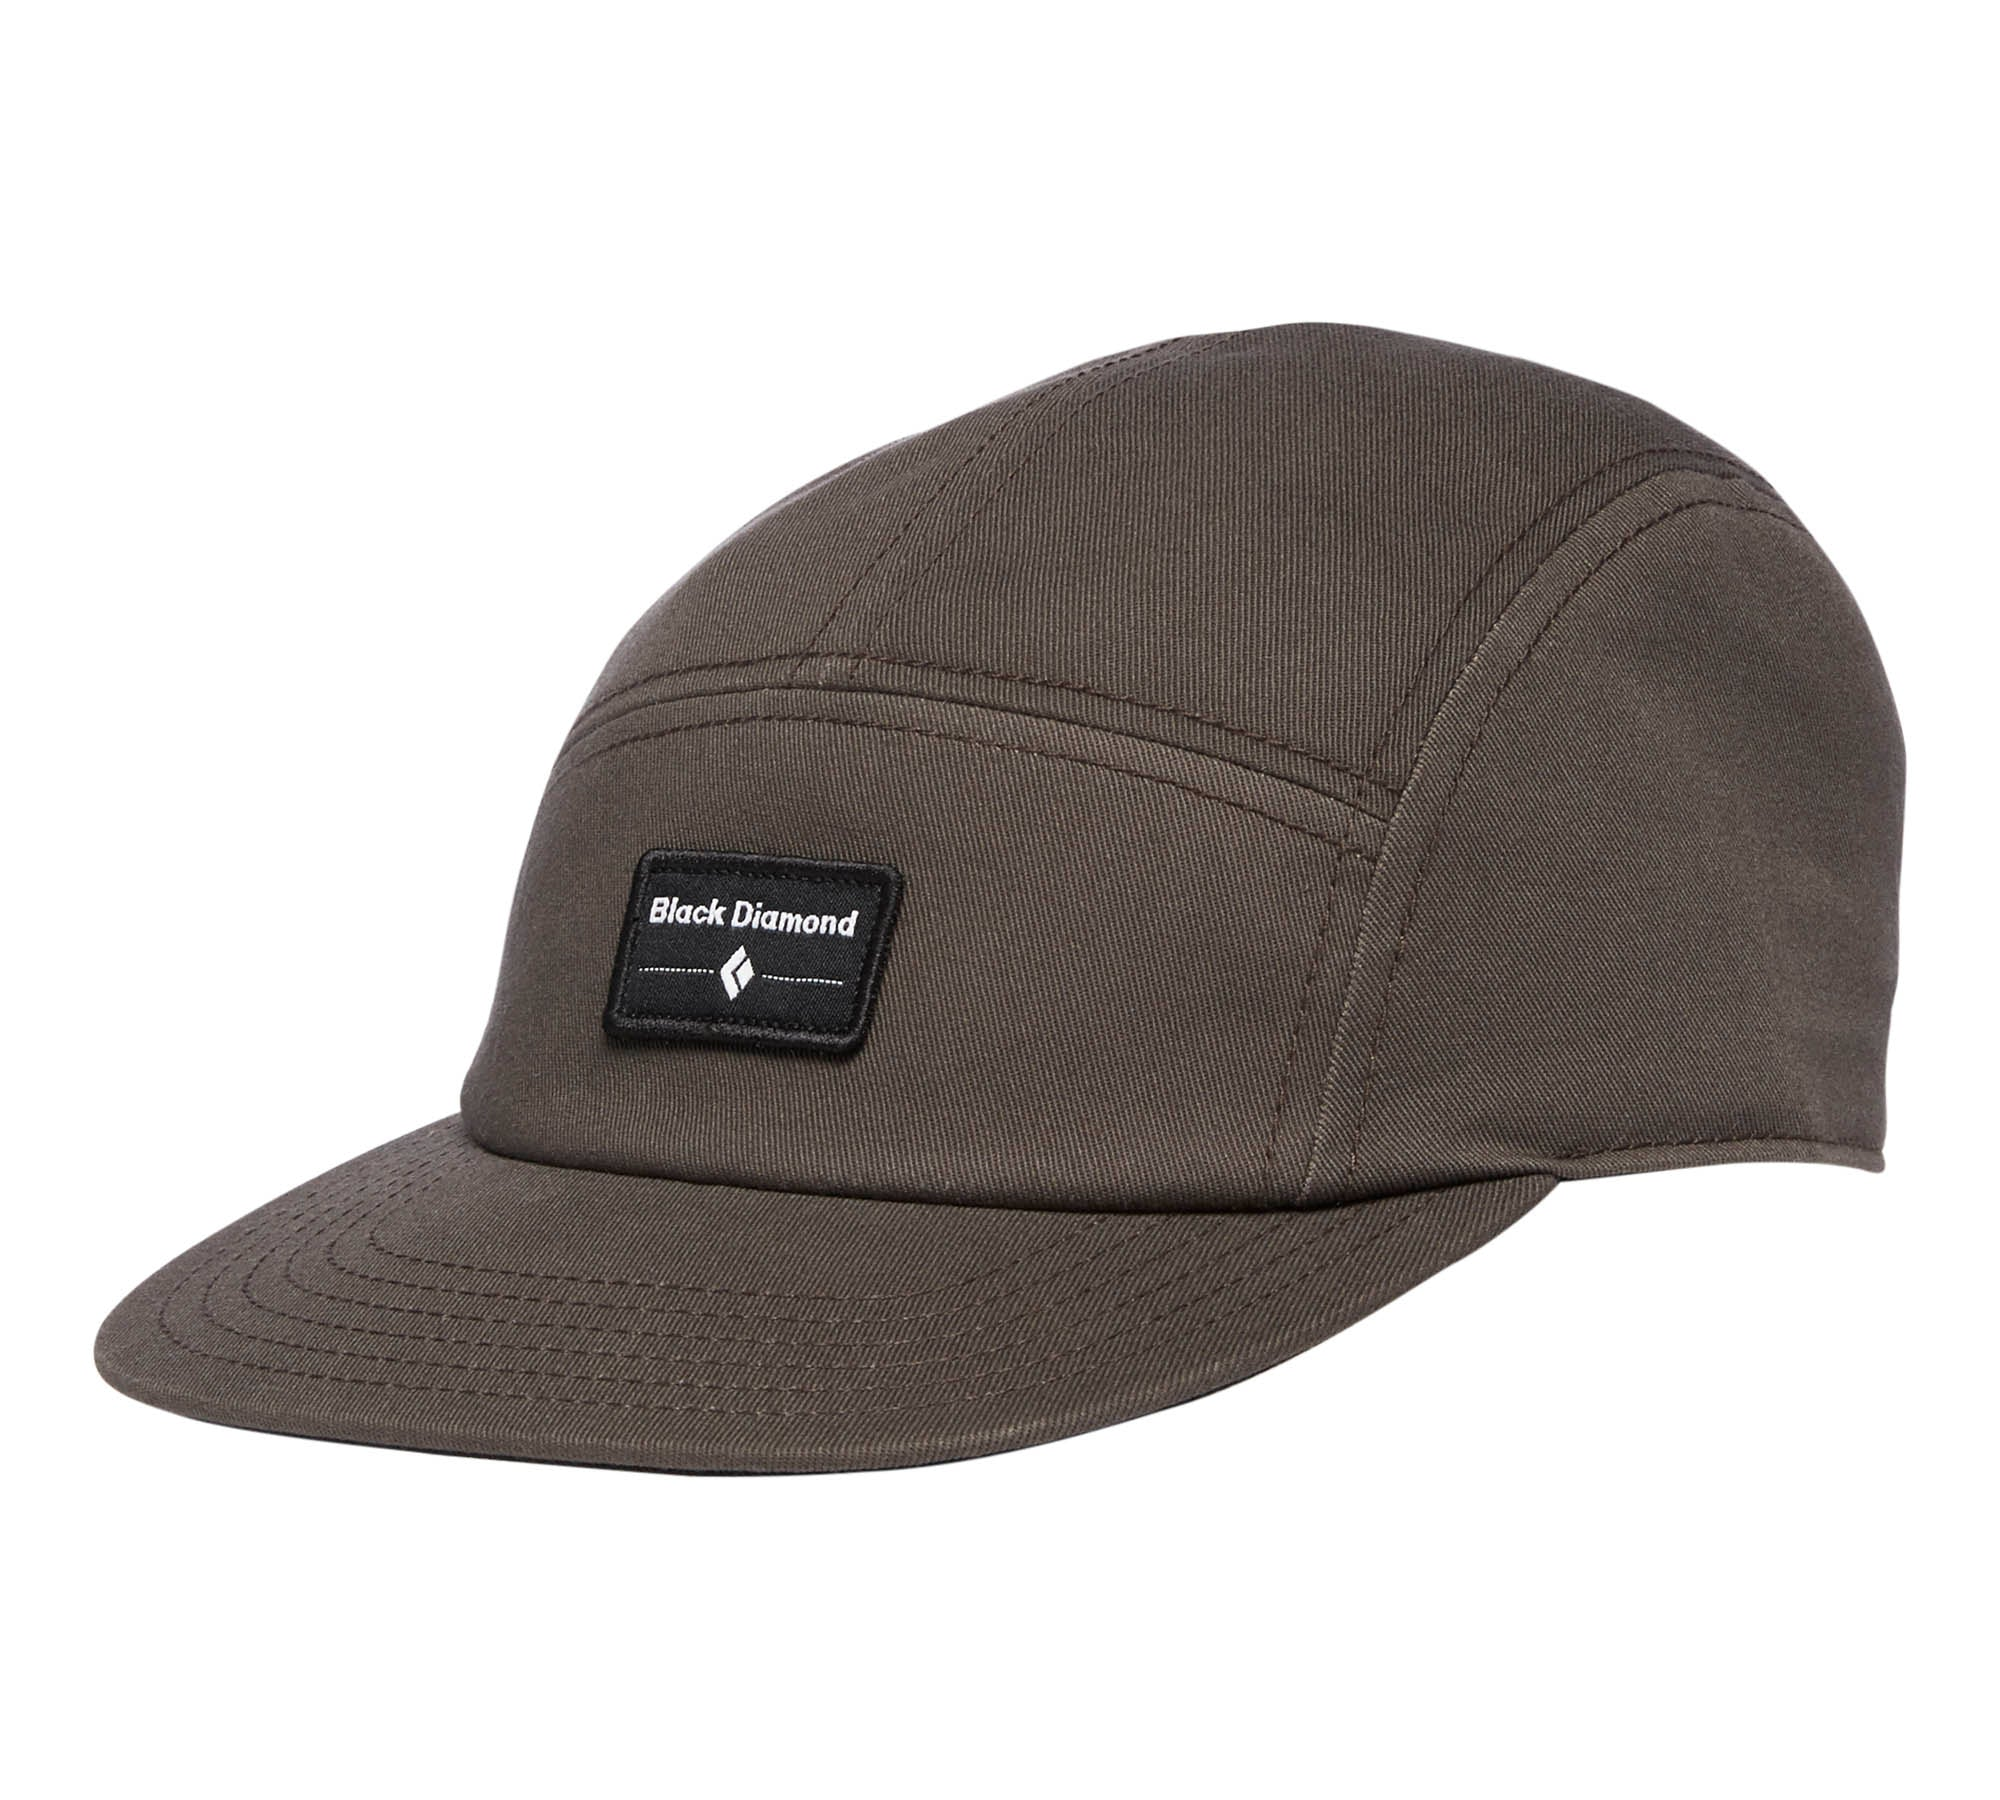 BLACK DIAMOND CAMPER CAP